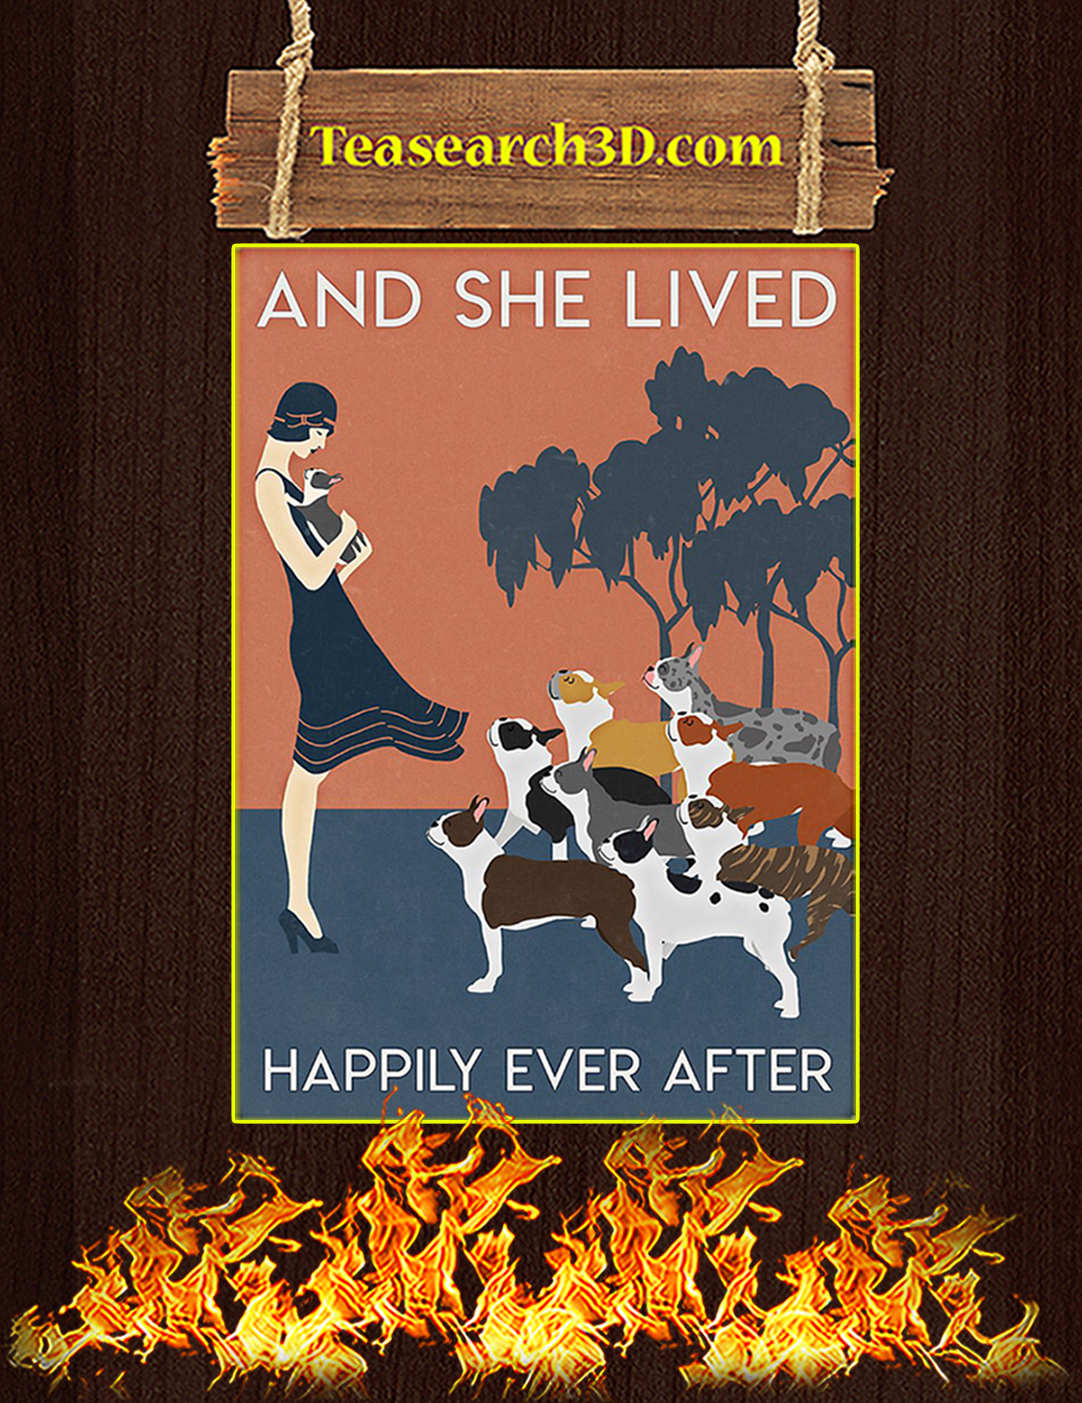 Boston terrier And she lived happily ever after poster A2